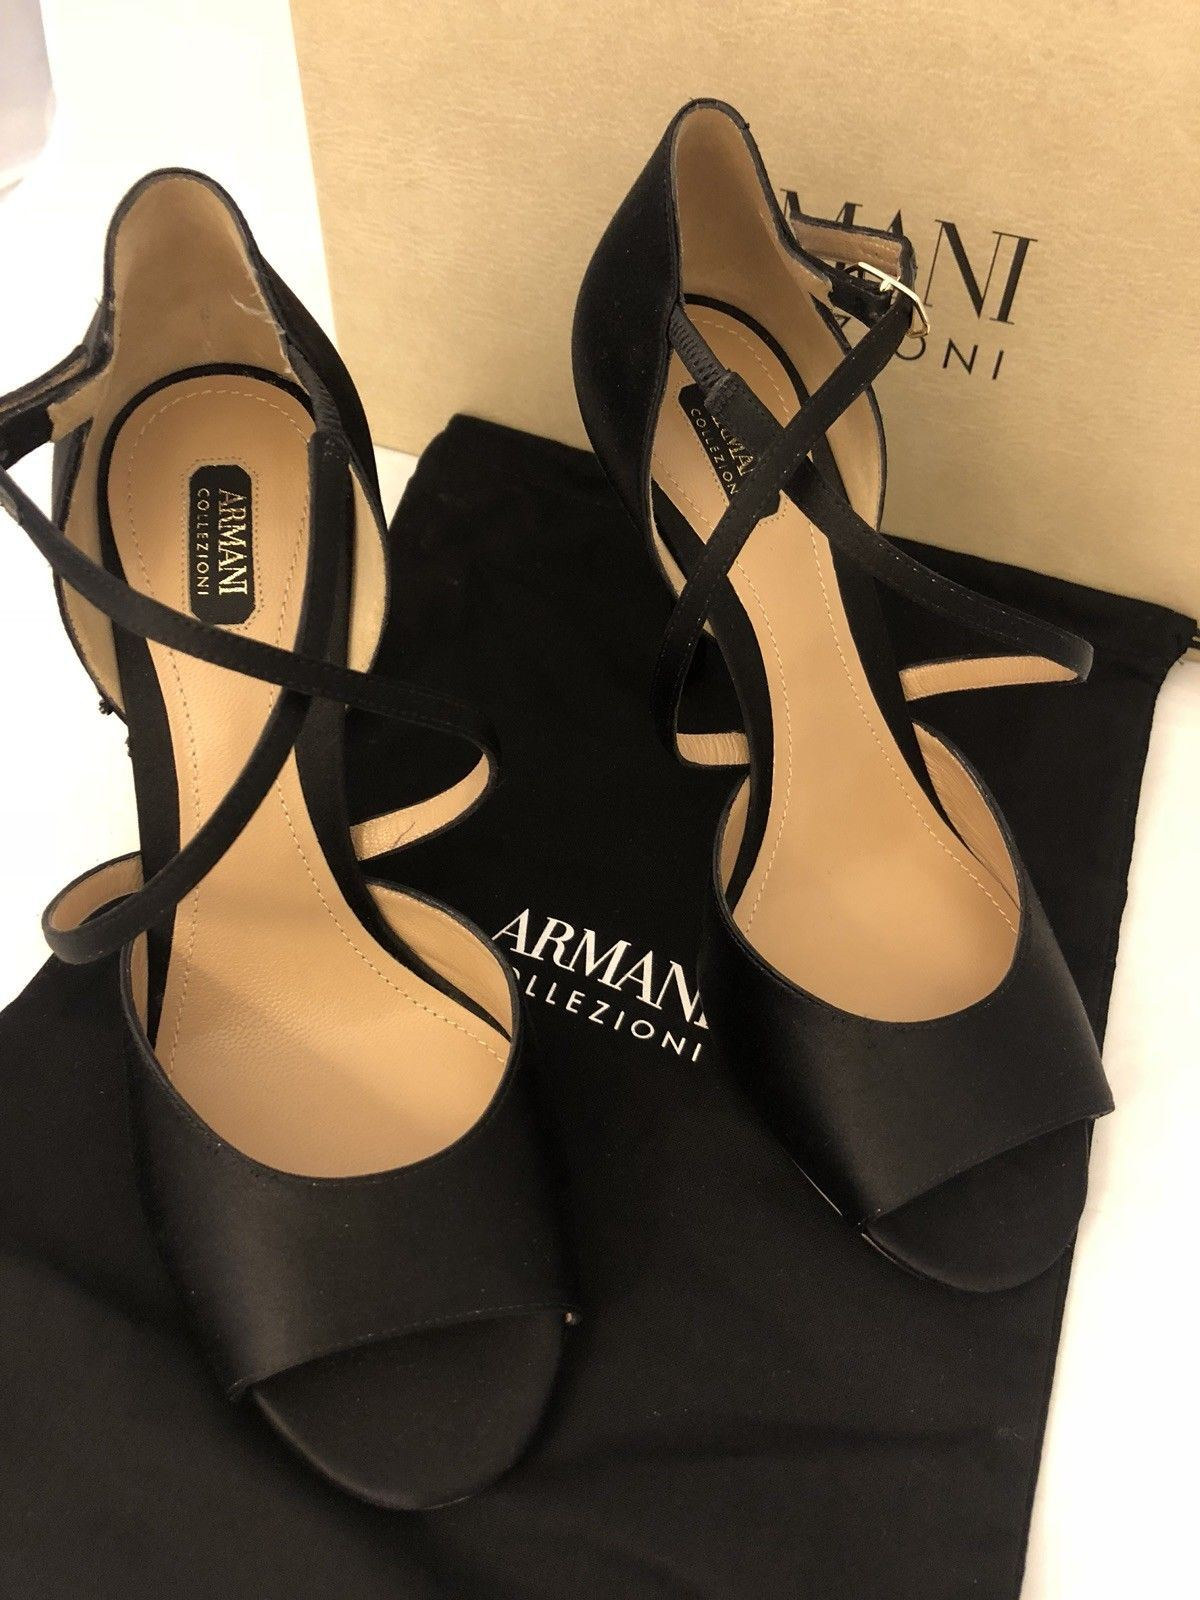 NIB $995 Armani Collezioni Women's High Heel Suede Dress Shoes 7.5 US X5P022 IT - BAYSUPERSTORE